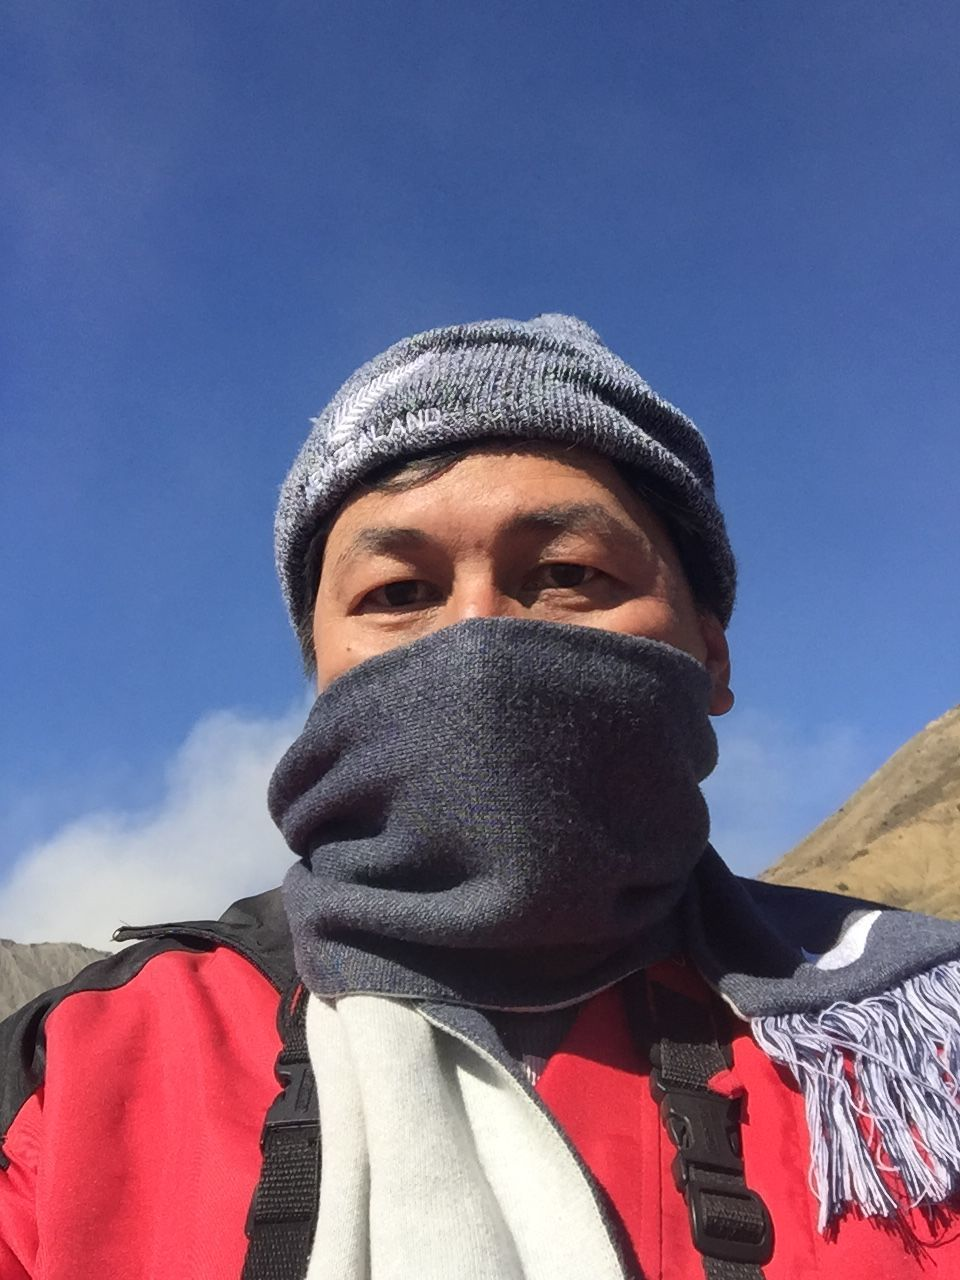 one person, day, low angle view, real people, headshot, leisure activity, front view, lifestyles, outdoors, young adult, looking at camera, portrait, sky, clear sky, men, close-up, warm clothing, people